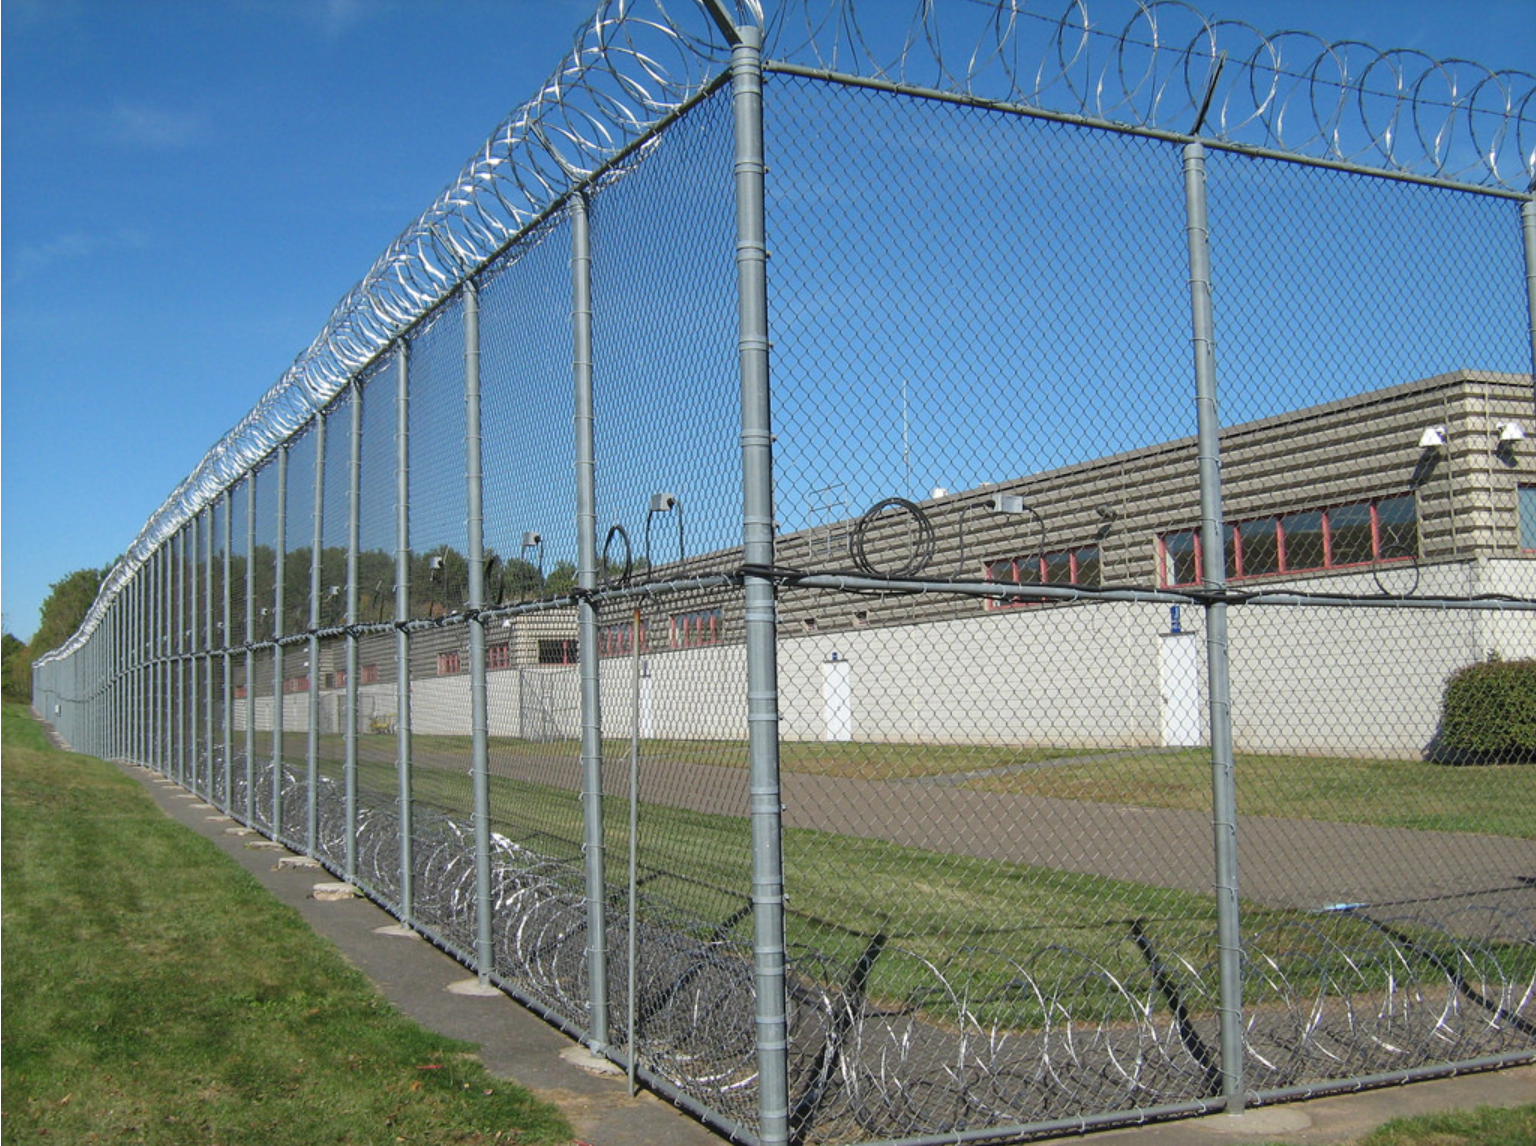 Report: Overhaul needed to avoid 'untimely' health care for inmates